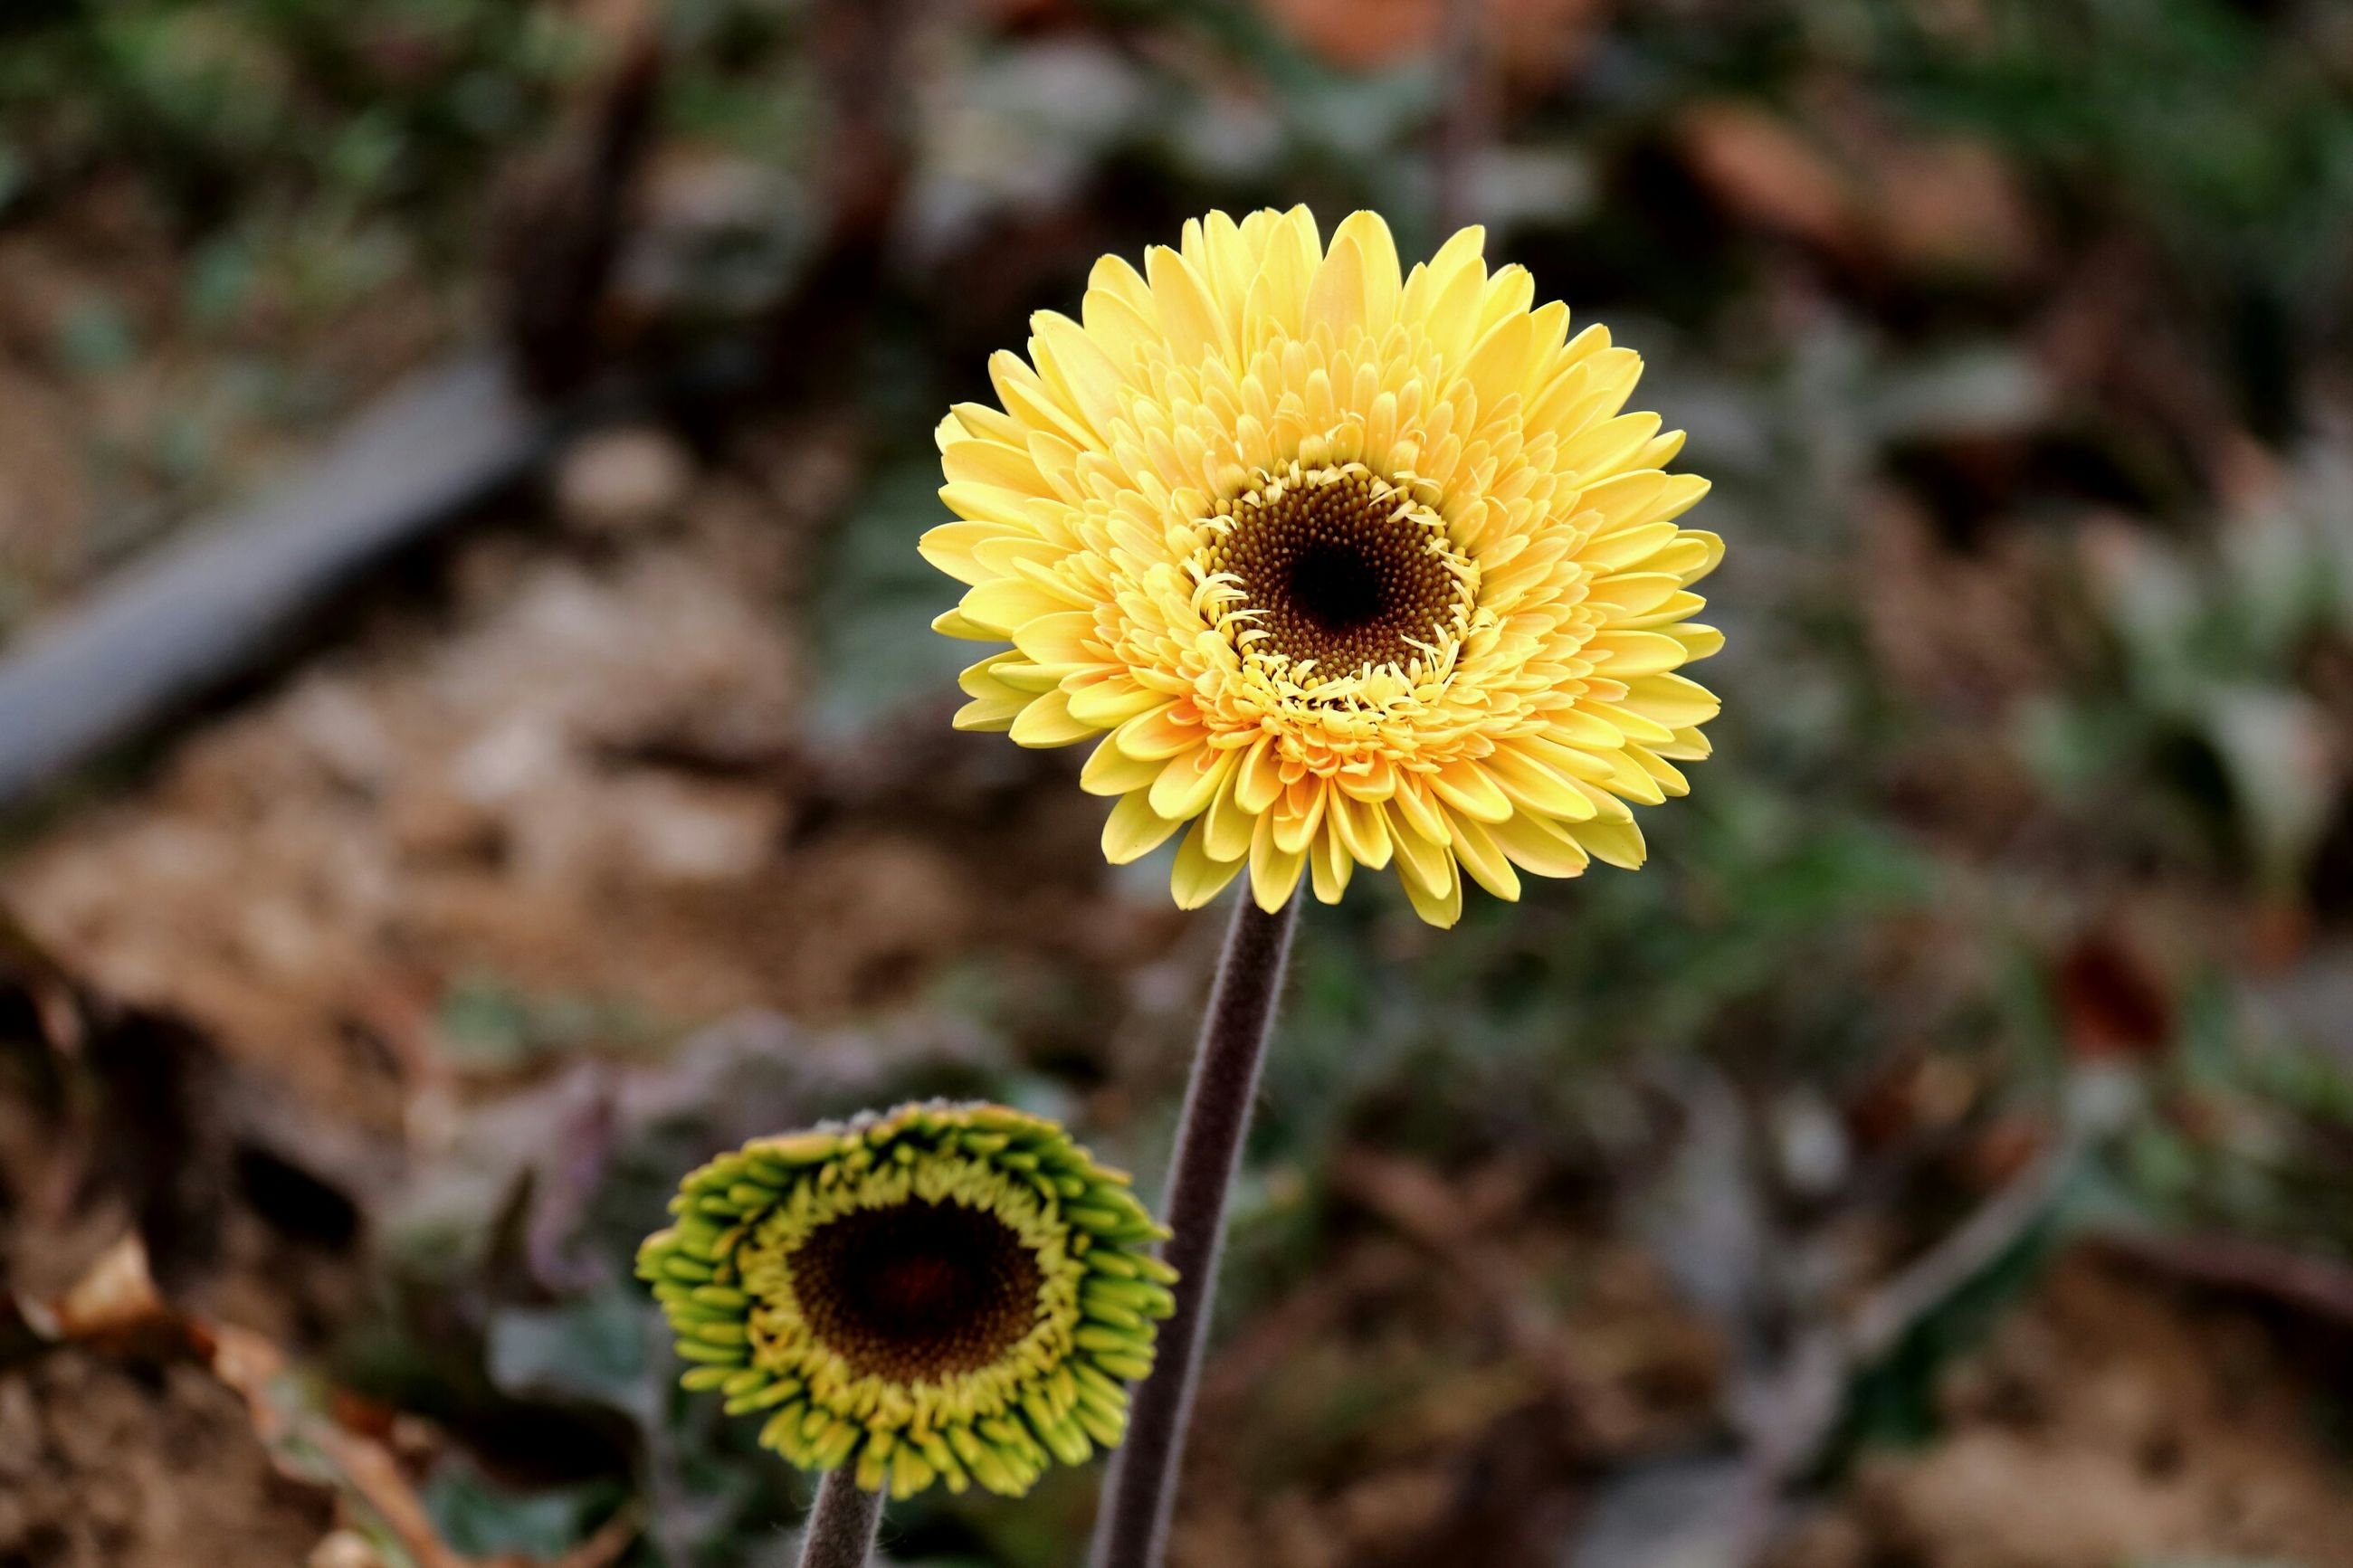 yellow, flower, growth, fragility, focus on foreground, dandelion, close-up, flower head, freshness, nature, plant, beauty in nature, sunflower, field, single flower, blooming, selective focus, petal, outdoors, wildflower